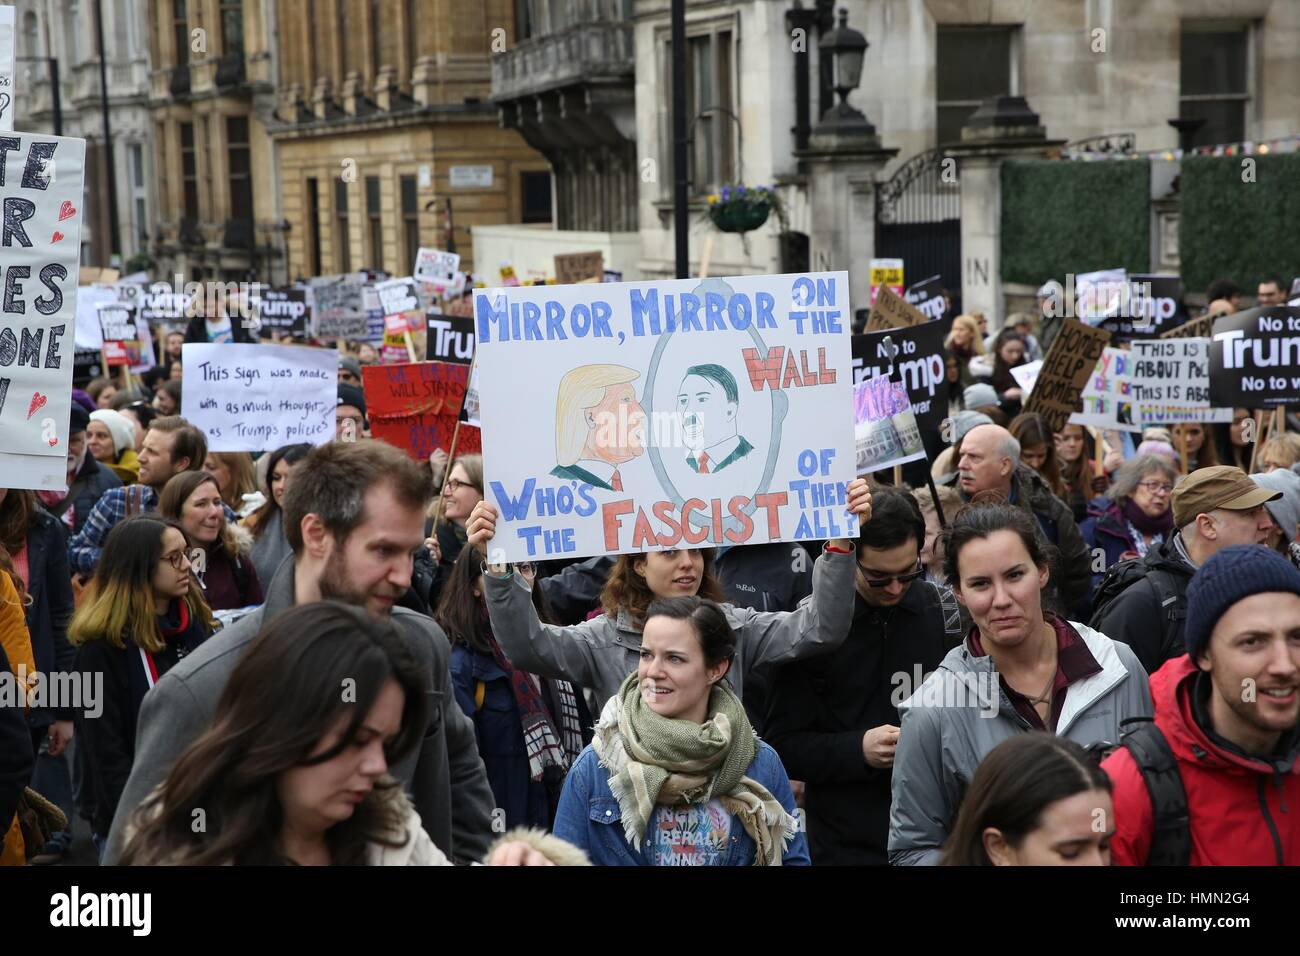 Thousands of demonstrators take part in a protest march and rally from the US Embassy in London to Downing Street. - Stock Image